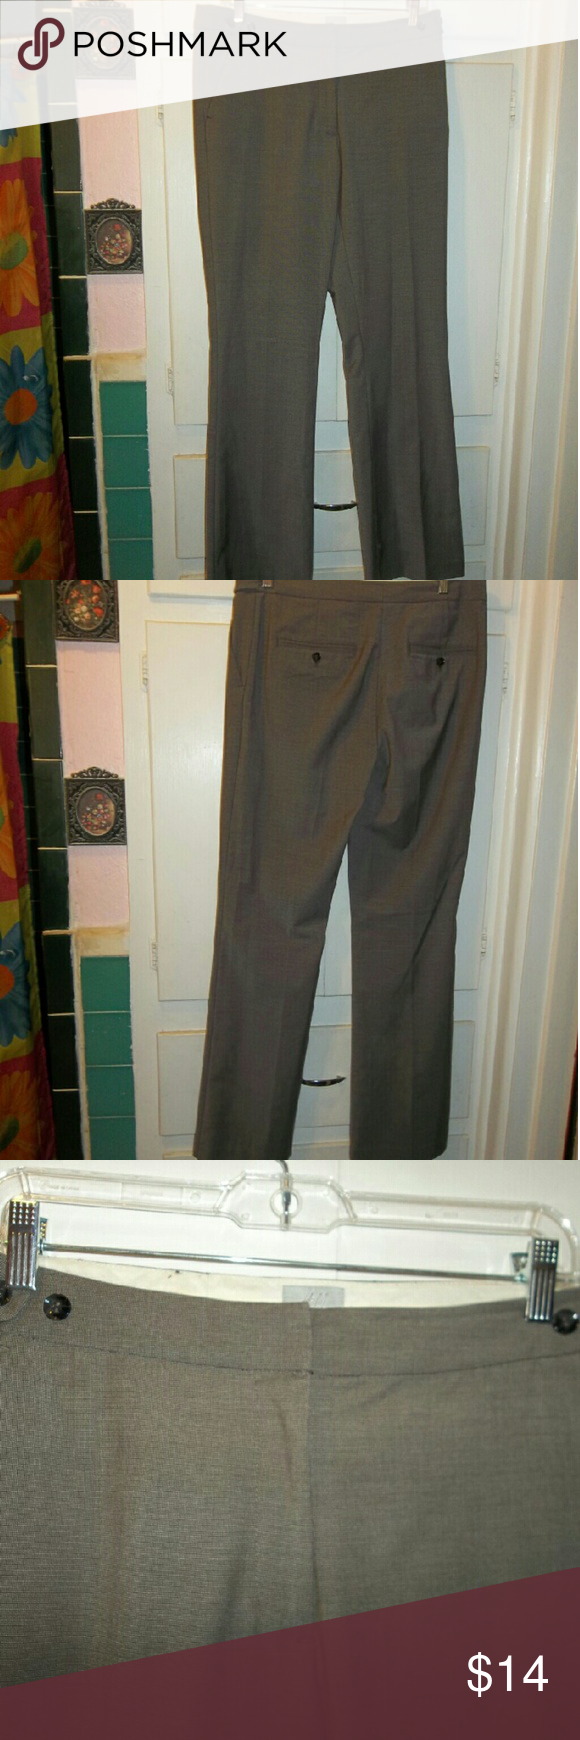 H&M Grey Slacks H&M Grey Slacks  Form-fitting work trousers Grey with light pin stripe pattern Two pockets in the back Gently used, and in good condition  **MAKE ME AN OFFER IF INTERESTED** H&M Pants Trousers